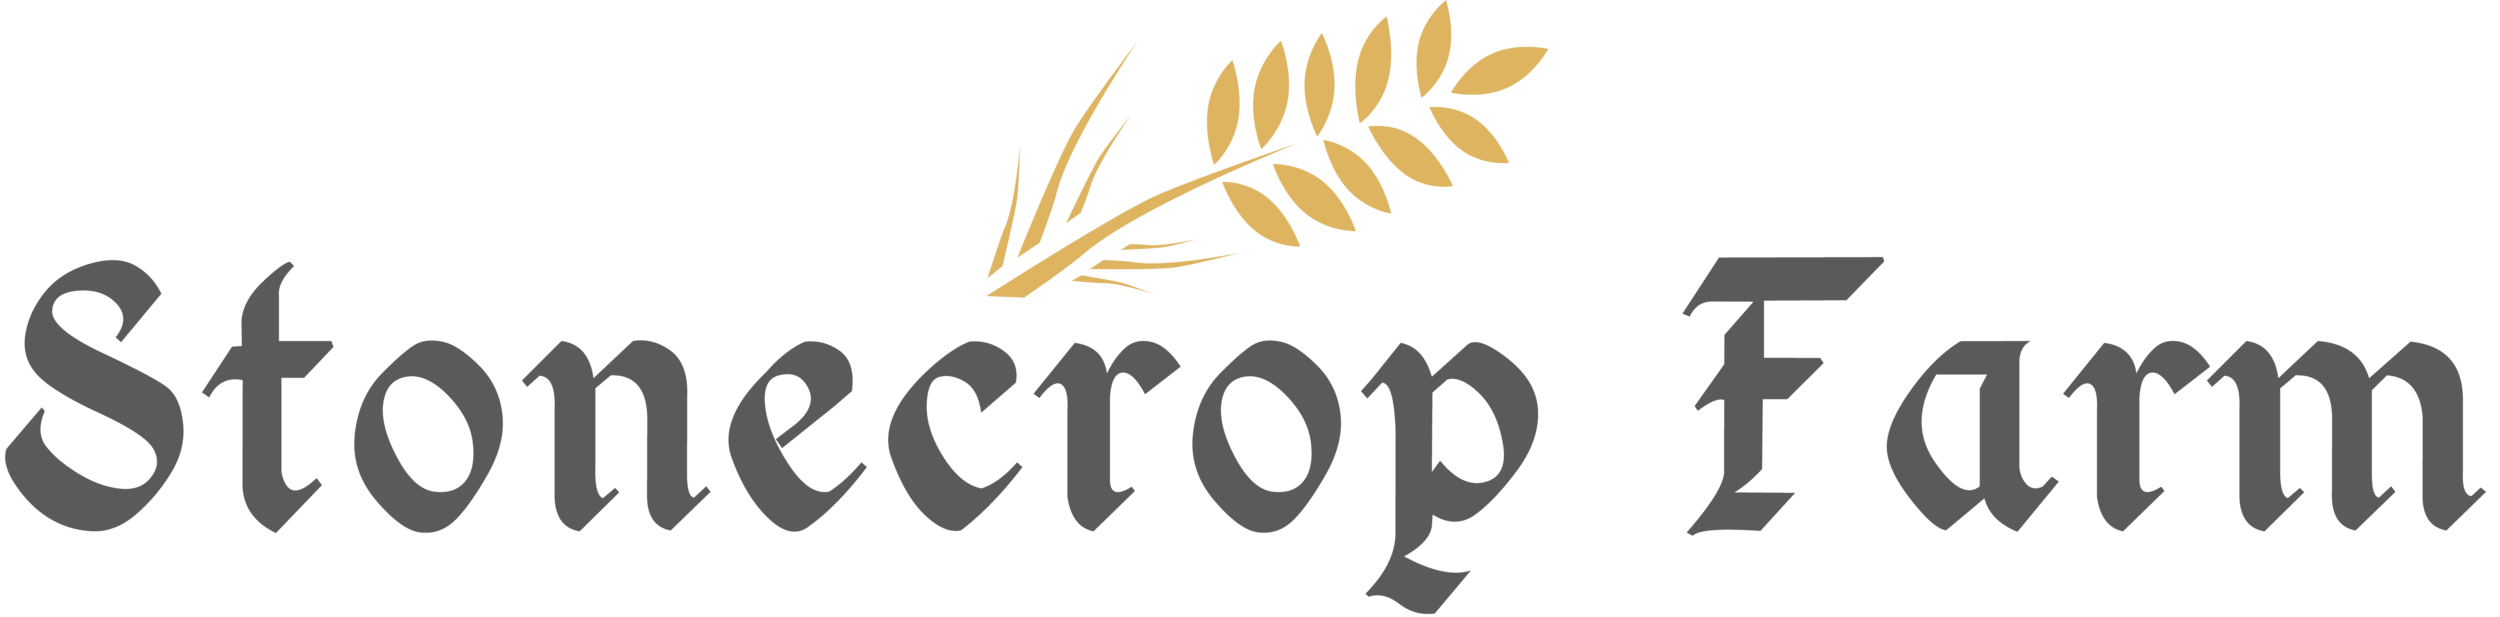 Stonecrop Farm Logo _ 595a5a Gray w. Wheat-1.png